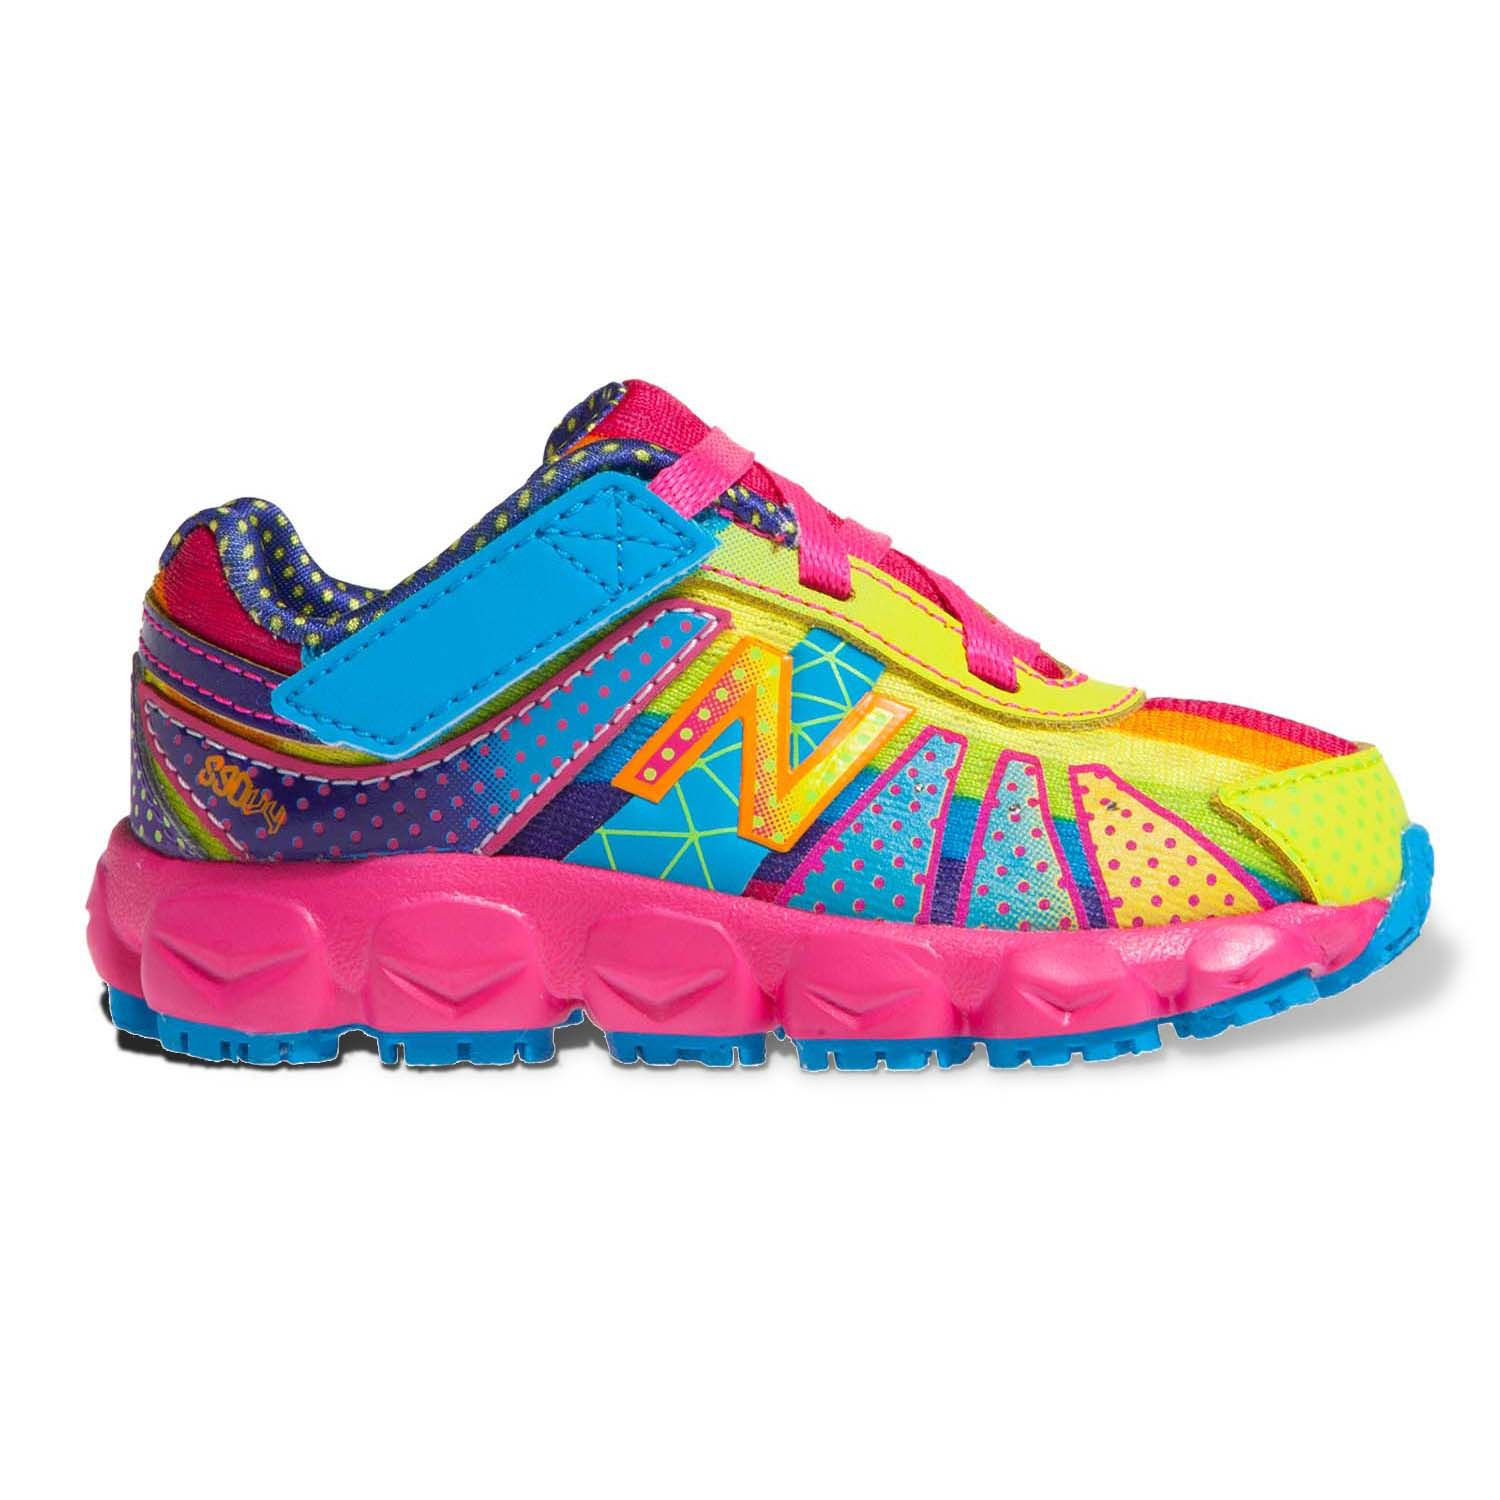 new balance shoes for toddler girls